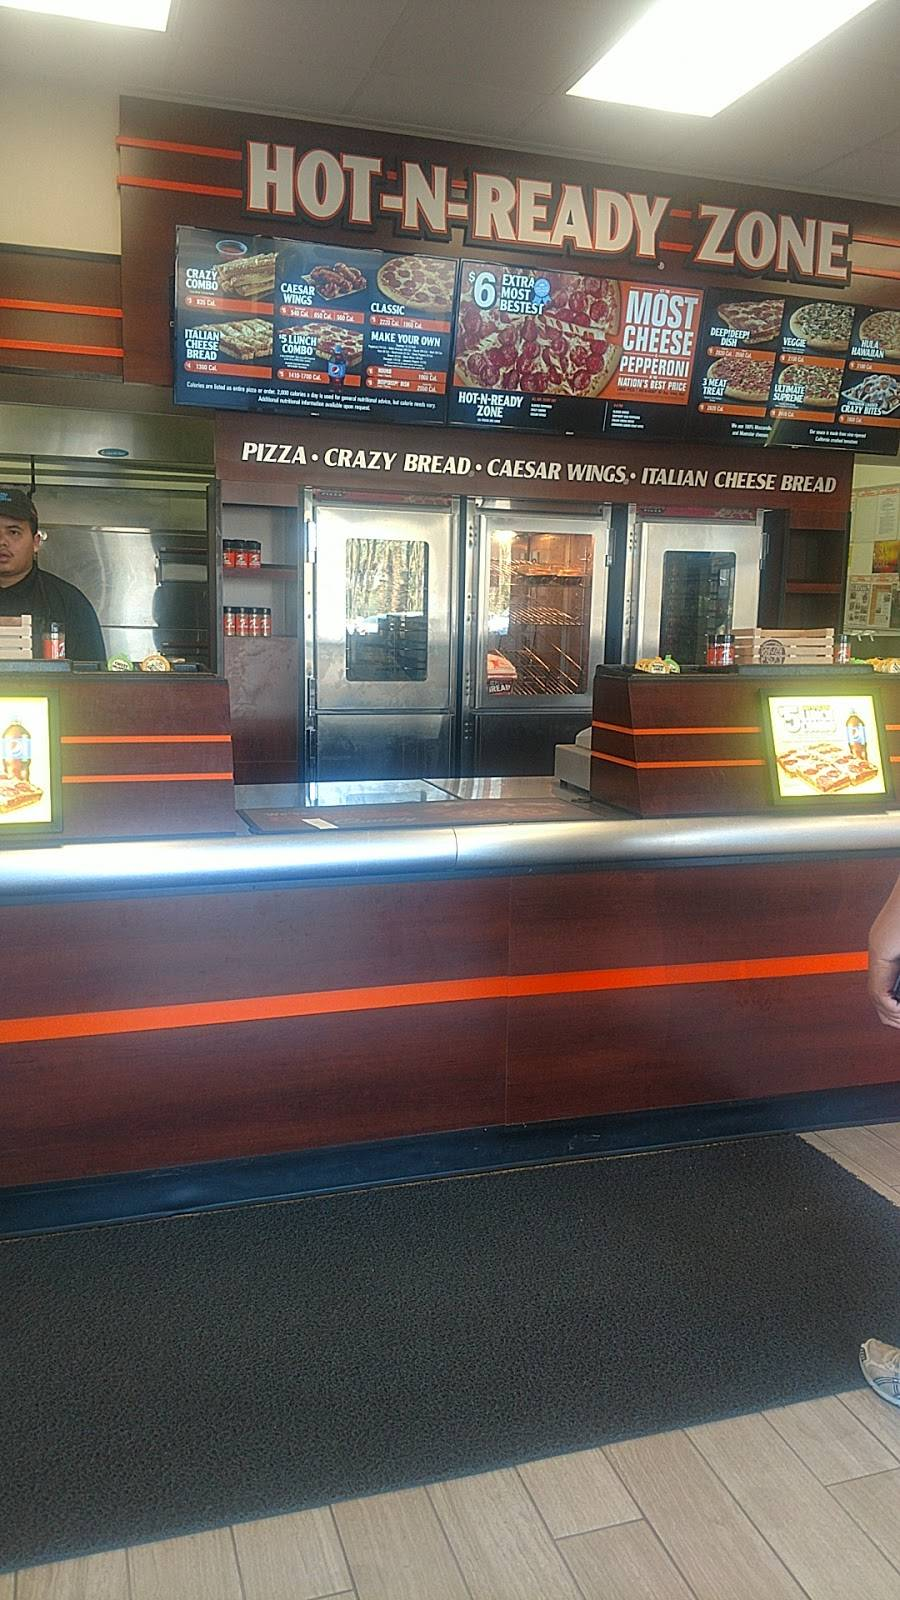 Little Caesars Pizza | meal takeaway | 82360 CA-111, Indio, CA 92201, USA | 7603428020 OR +1 760-342-8020